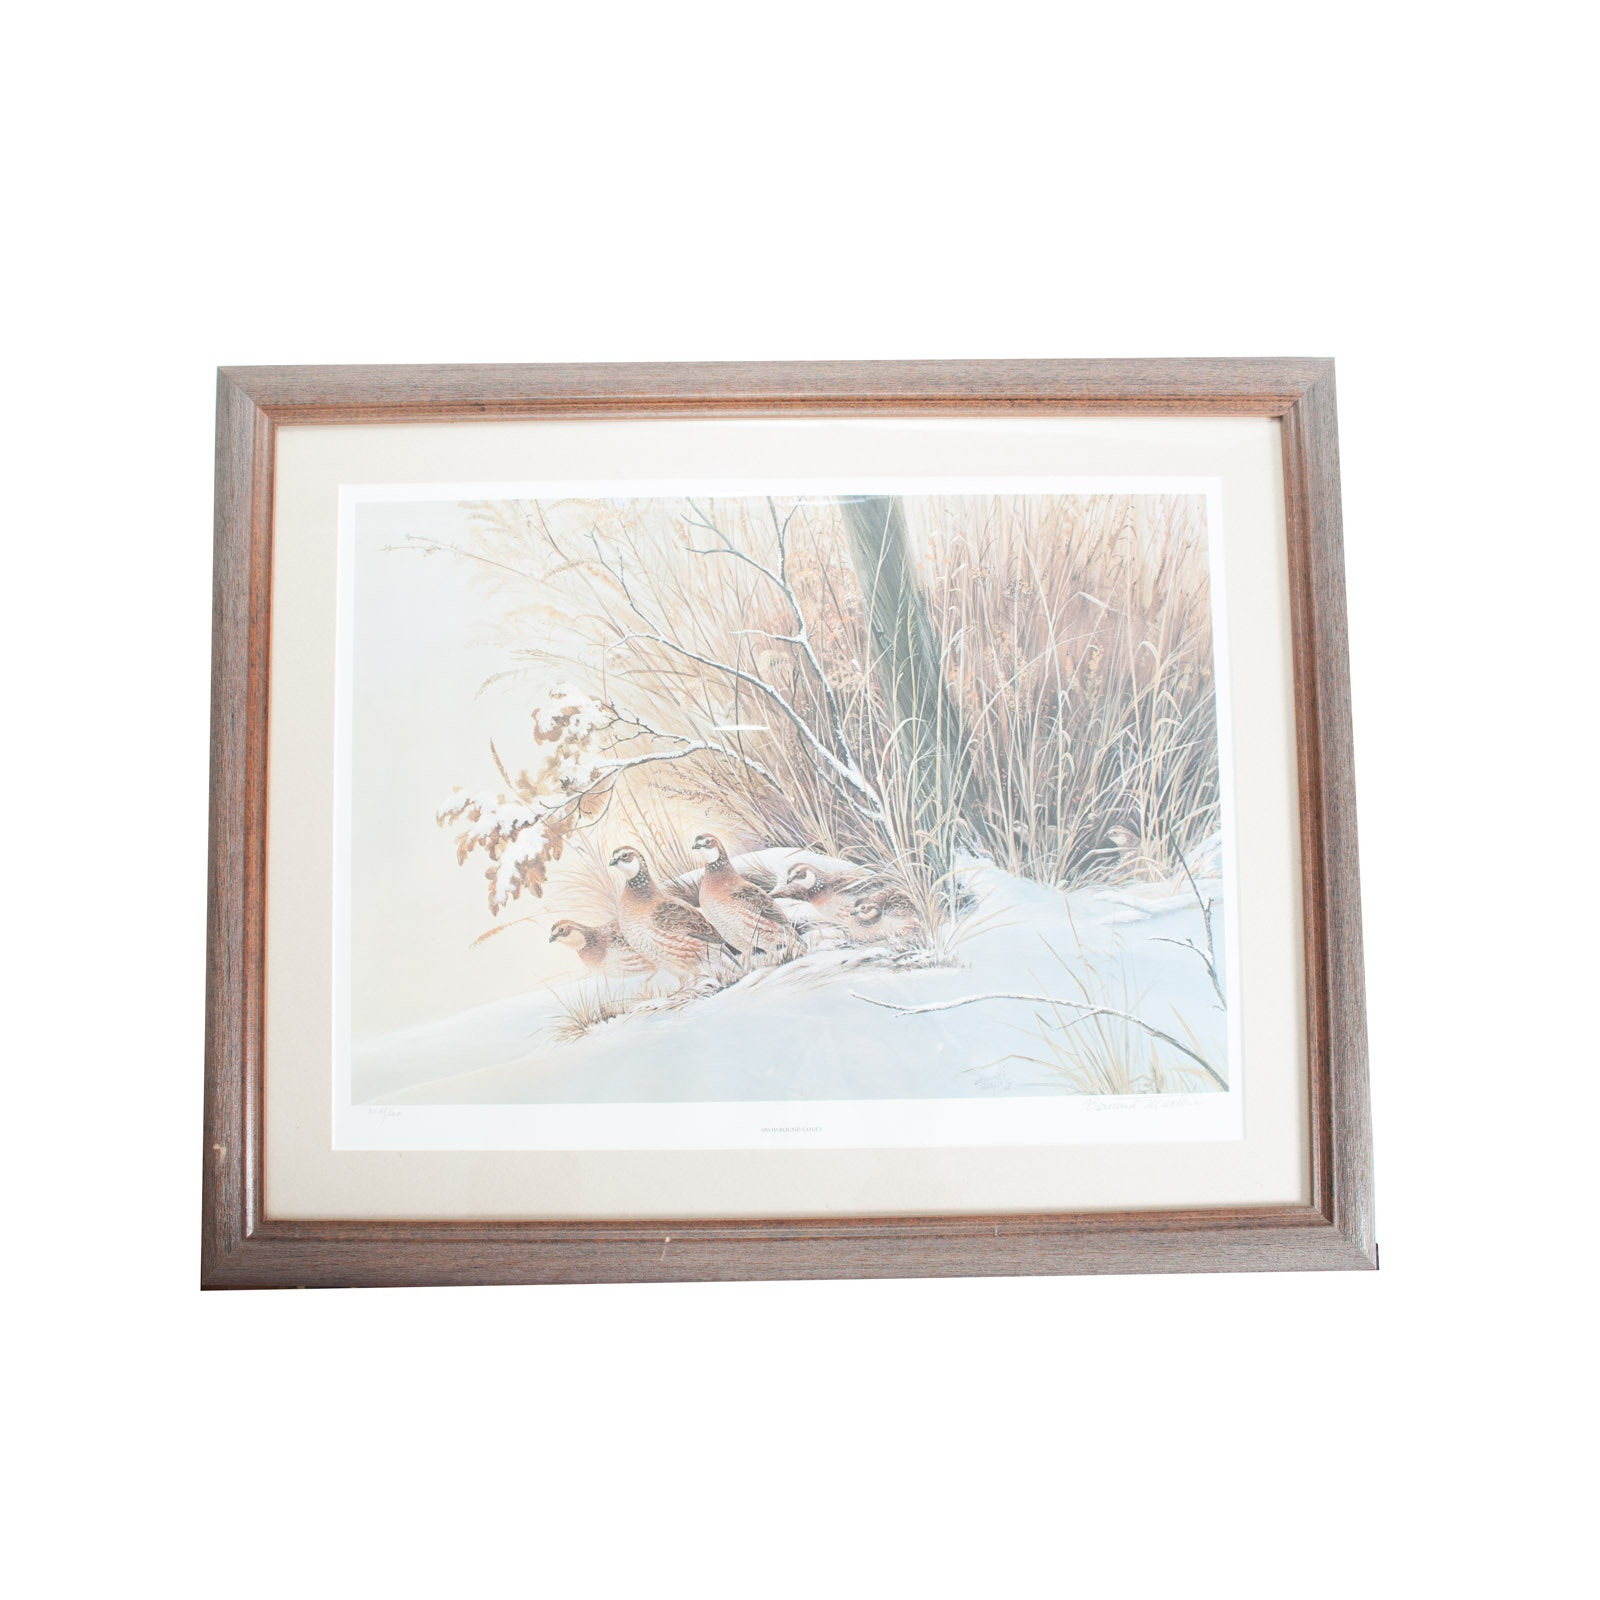 "Bernard Martin 1985 Limited Edition Offset Lithograph Print ""Snowbound Covey"""